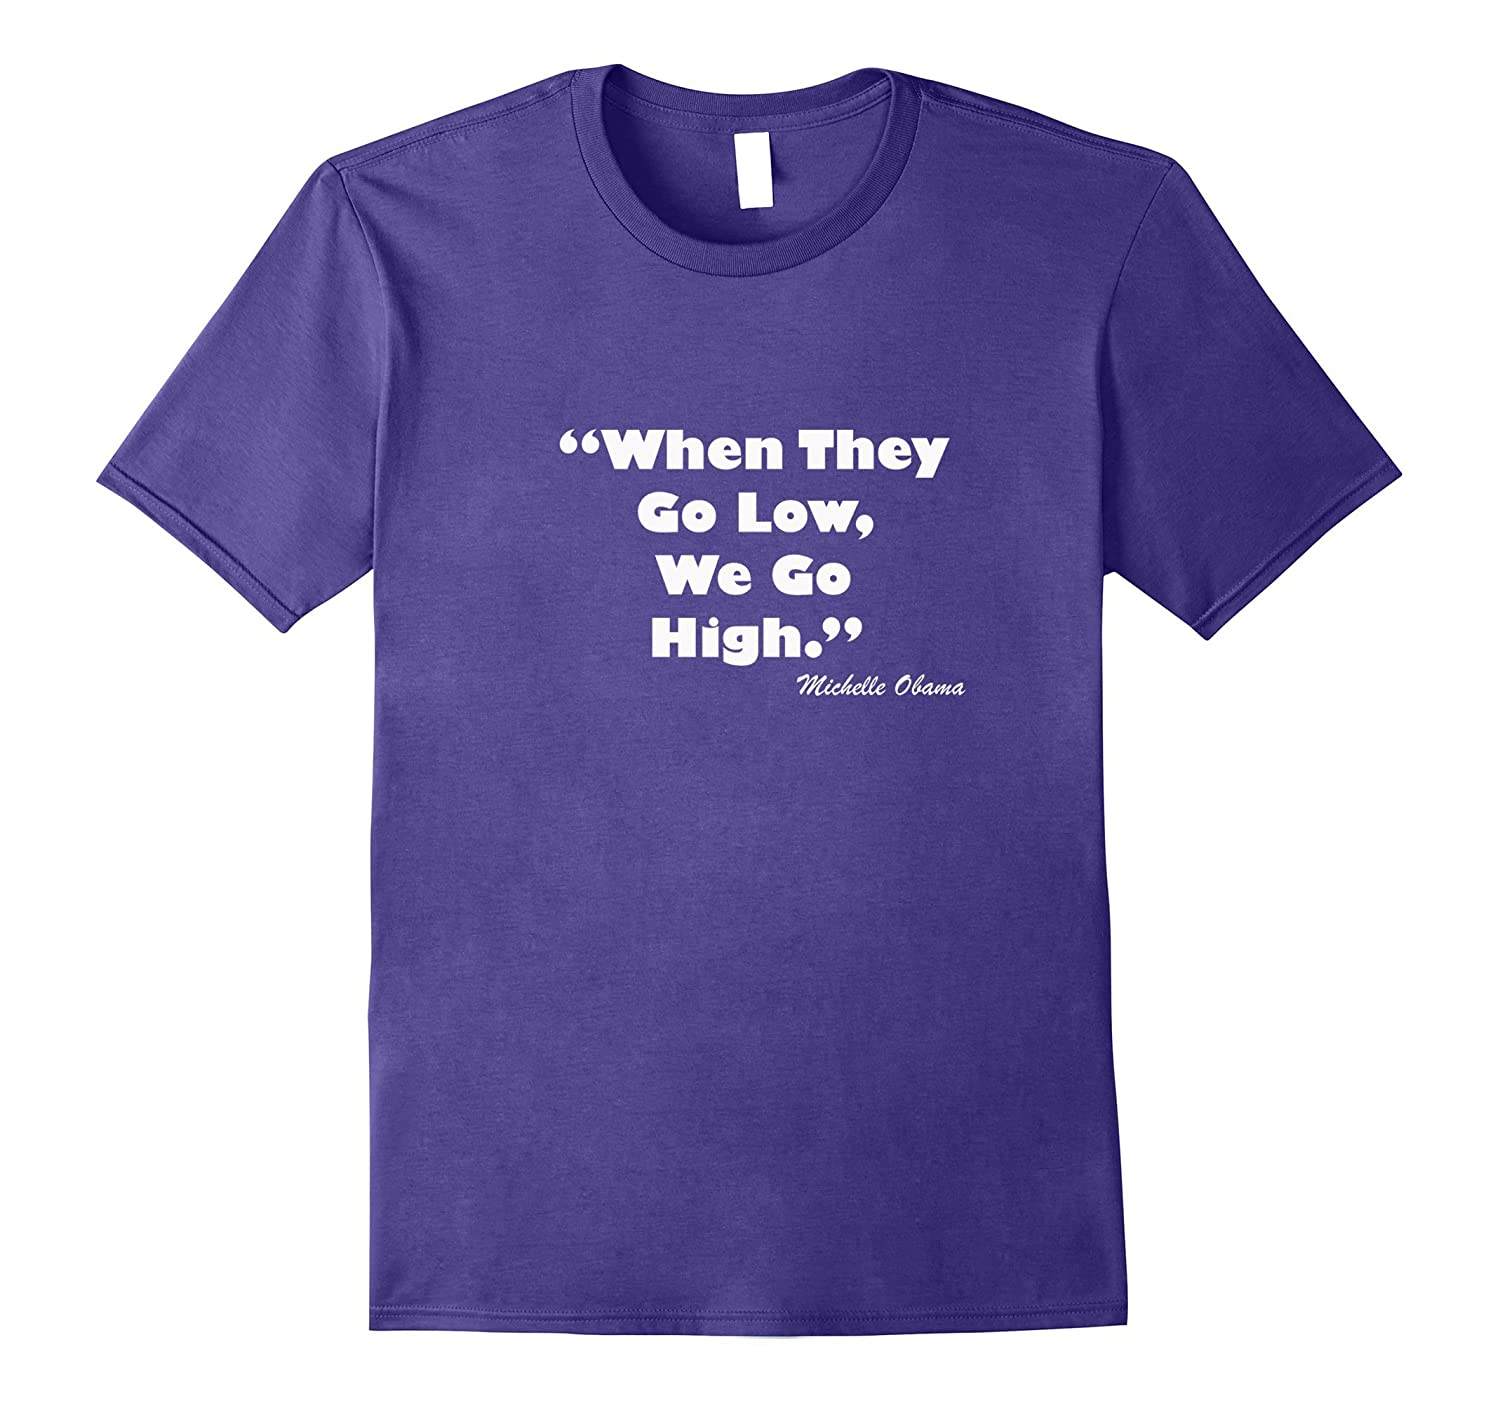 When They Go Low, We Go High T-shirt, Michelle O Quote Tee